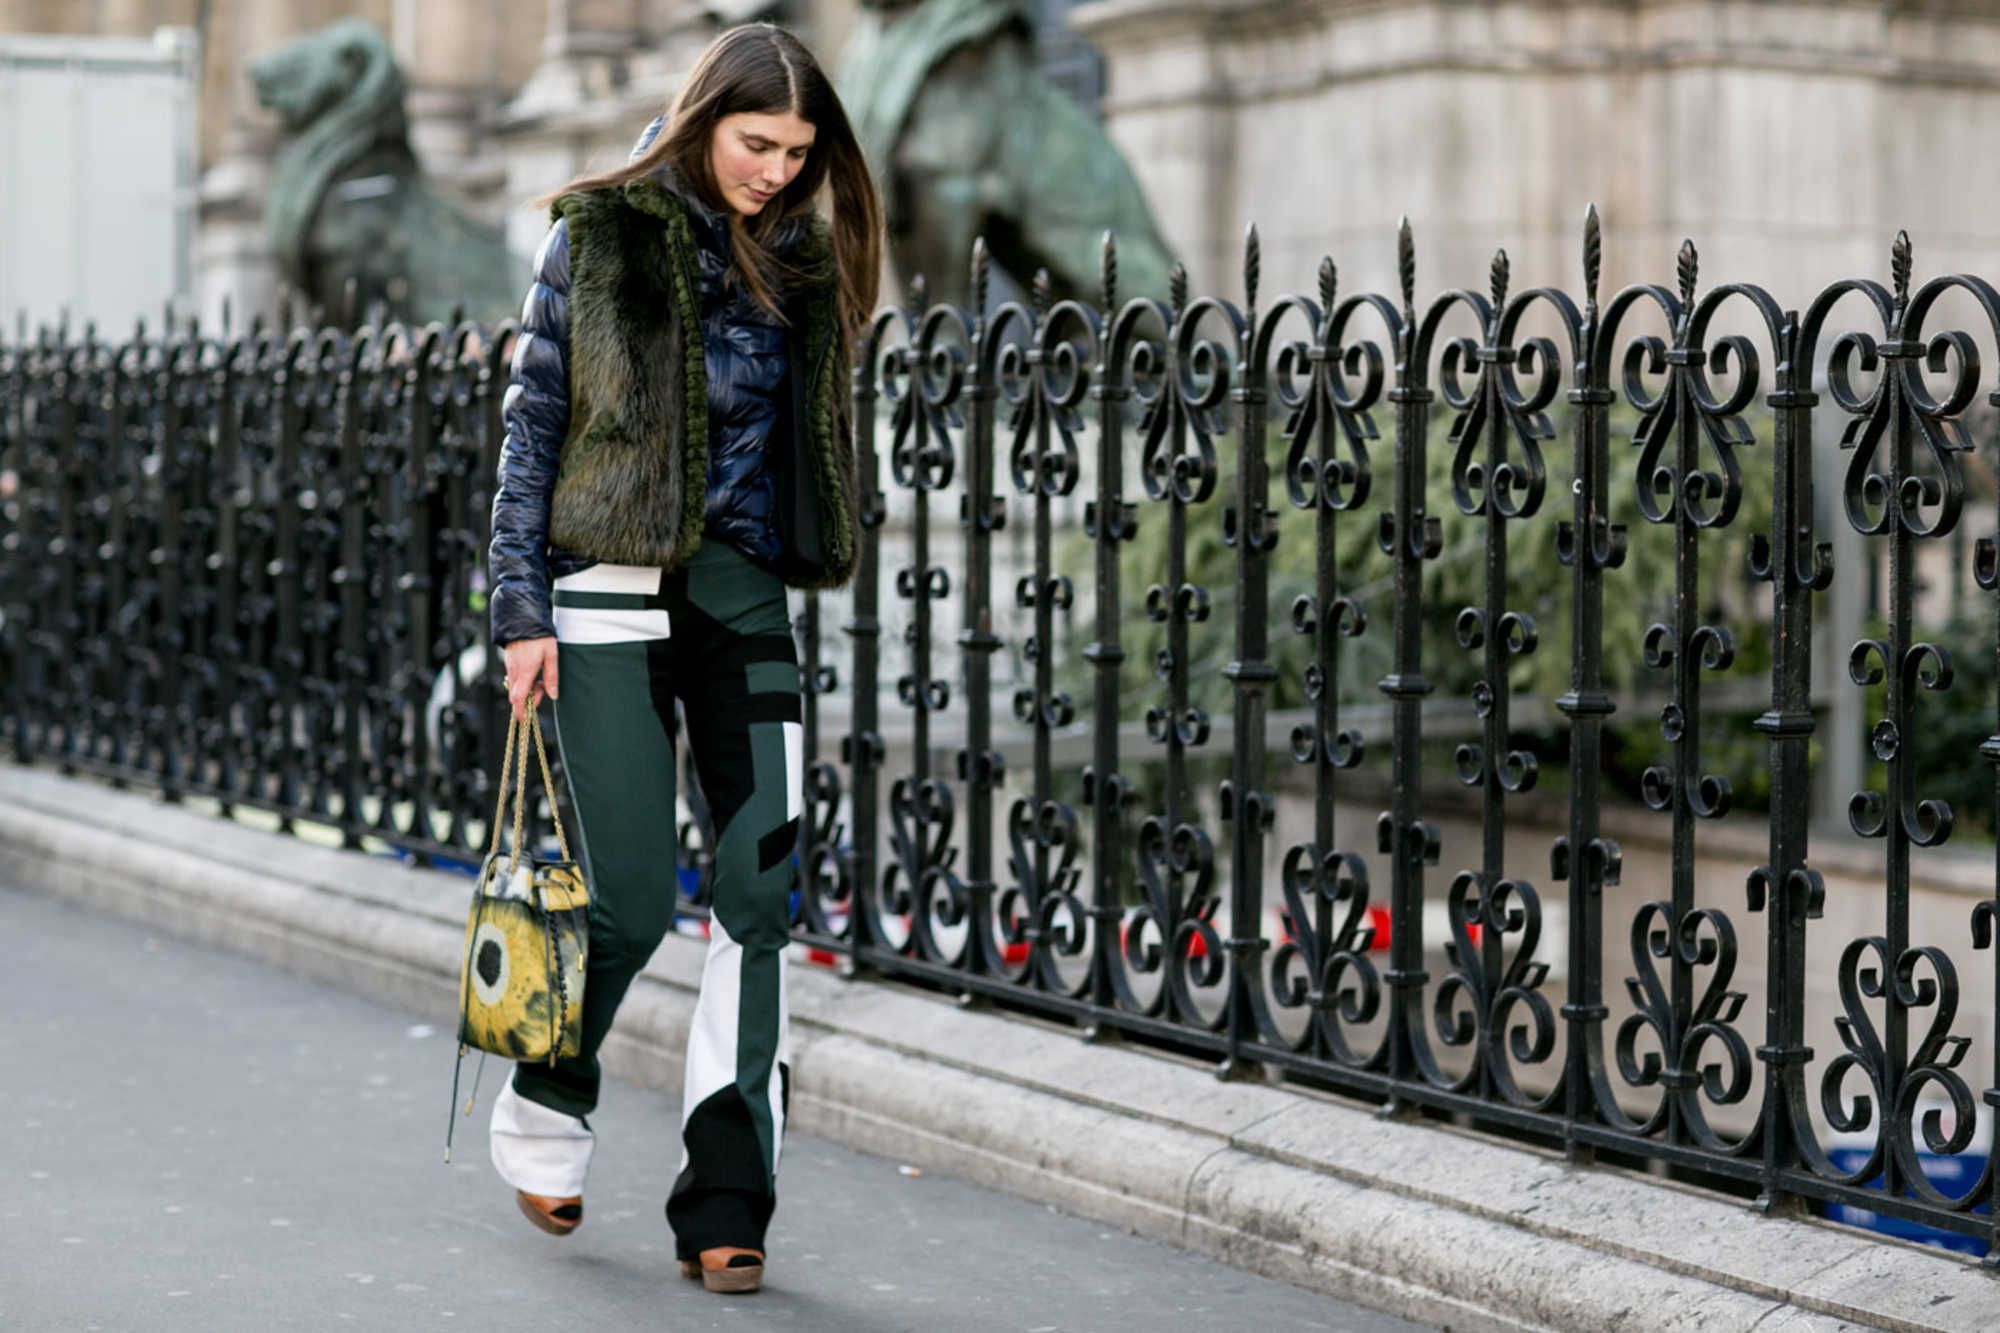 The Best Street Style From Paris Fashion Week So Far. It's the final countdown.